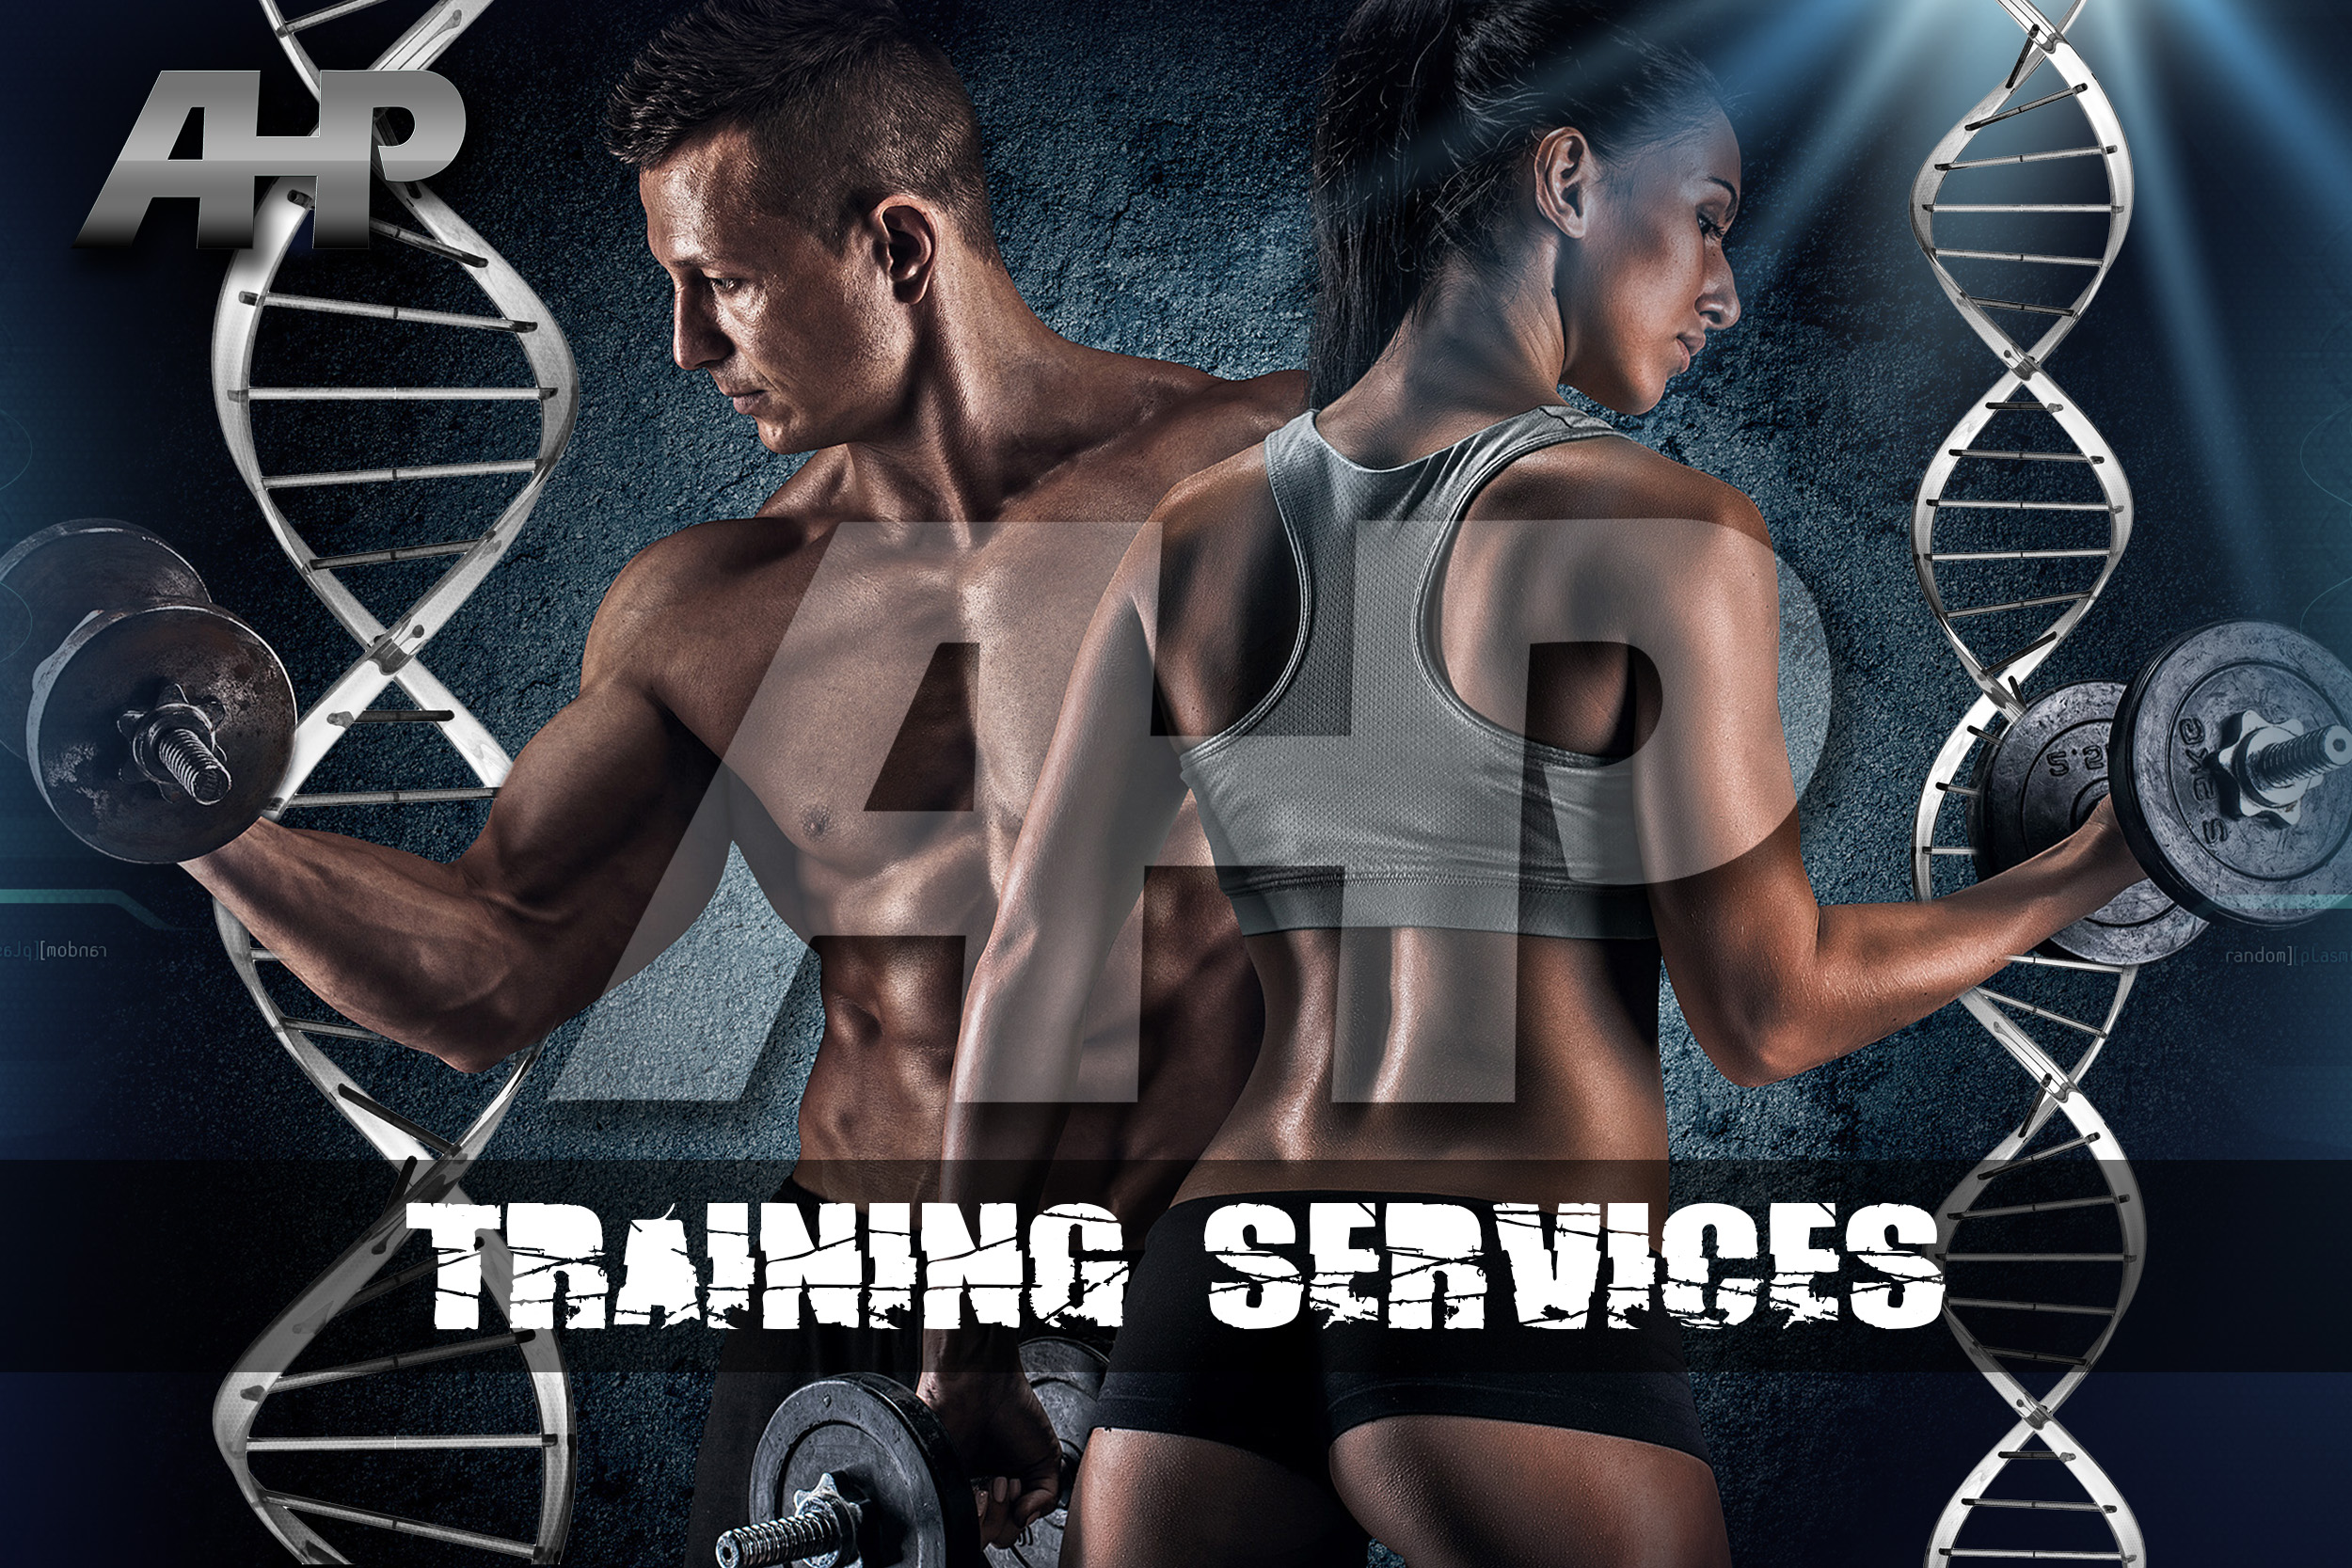 Training Services - AHP.jpg